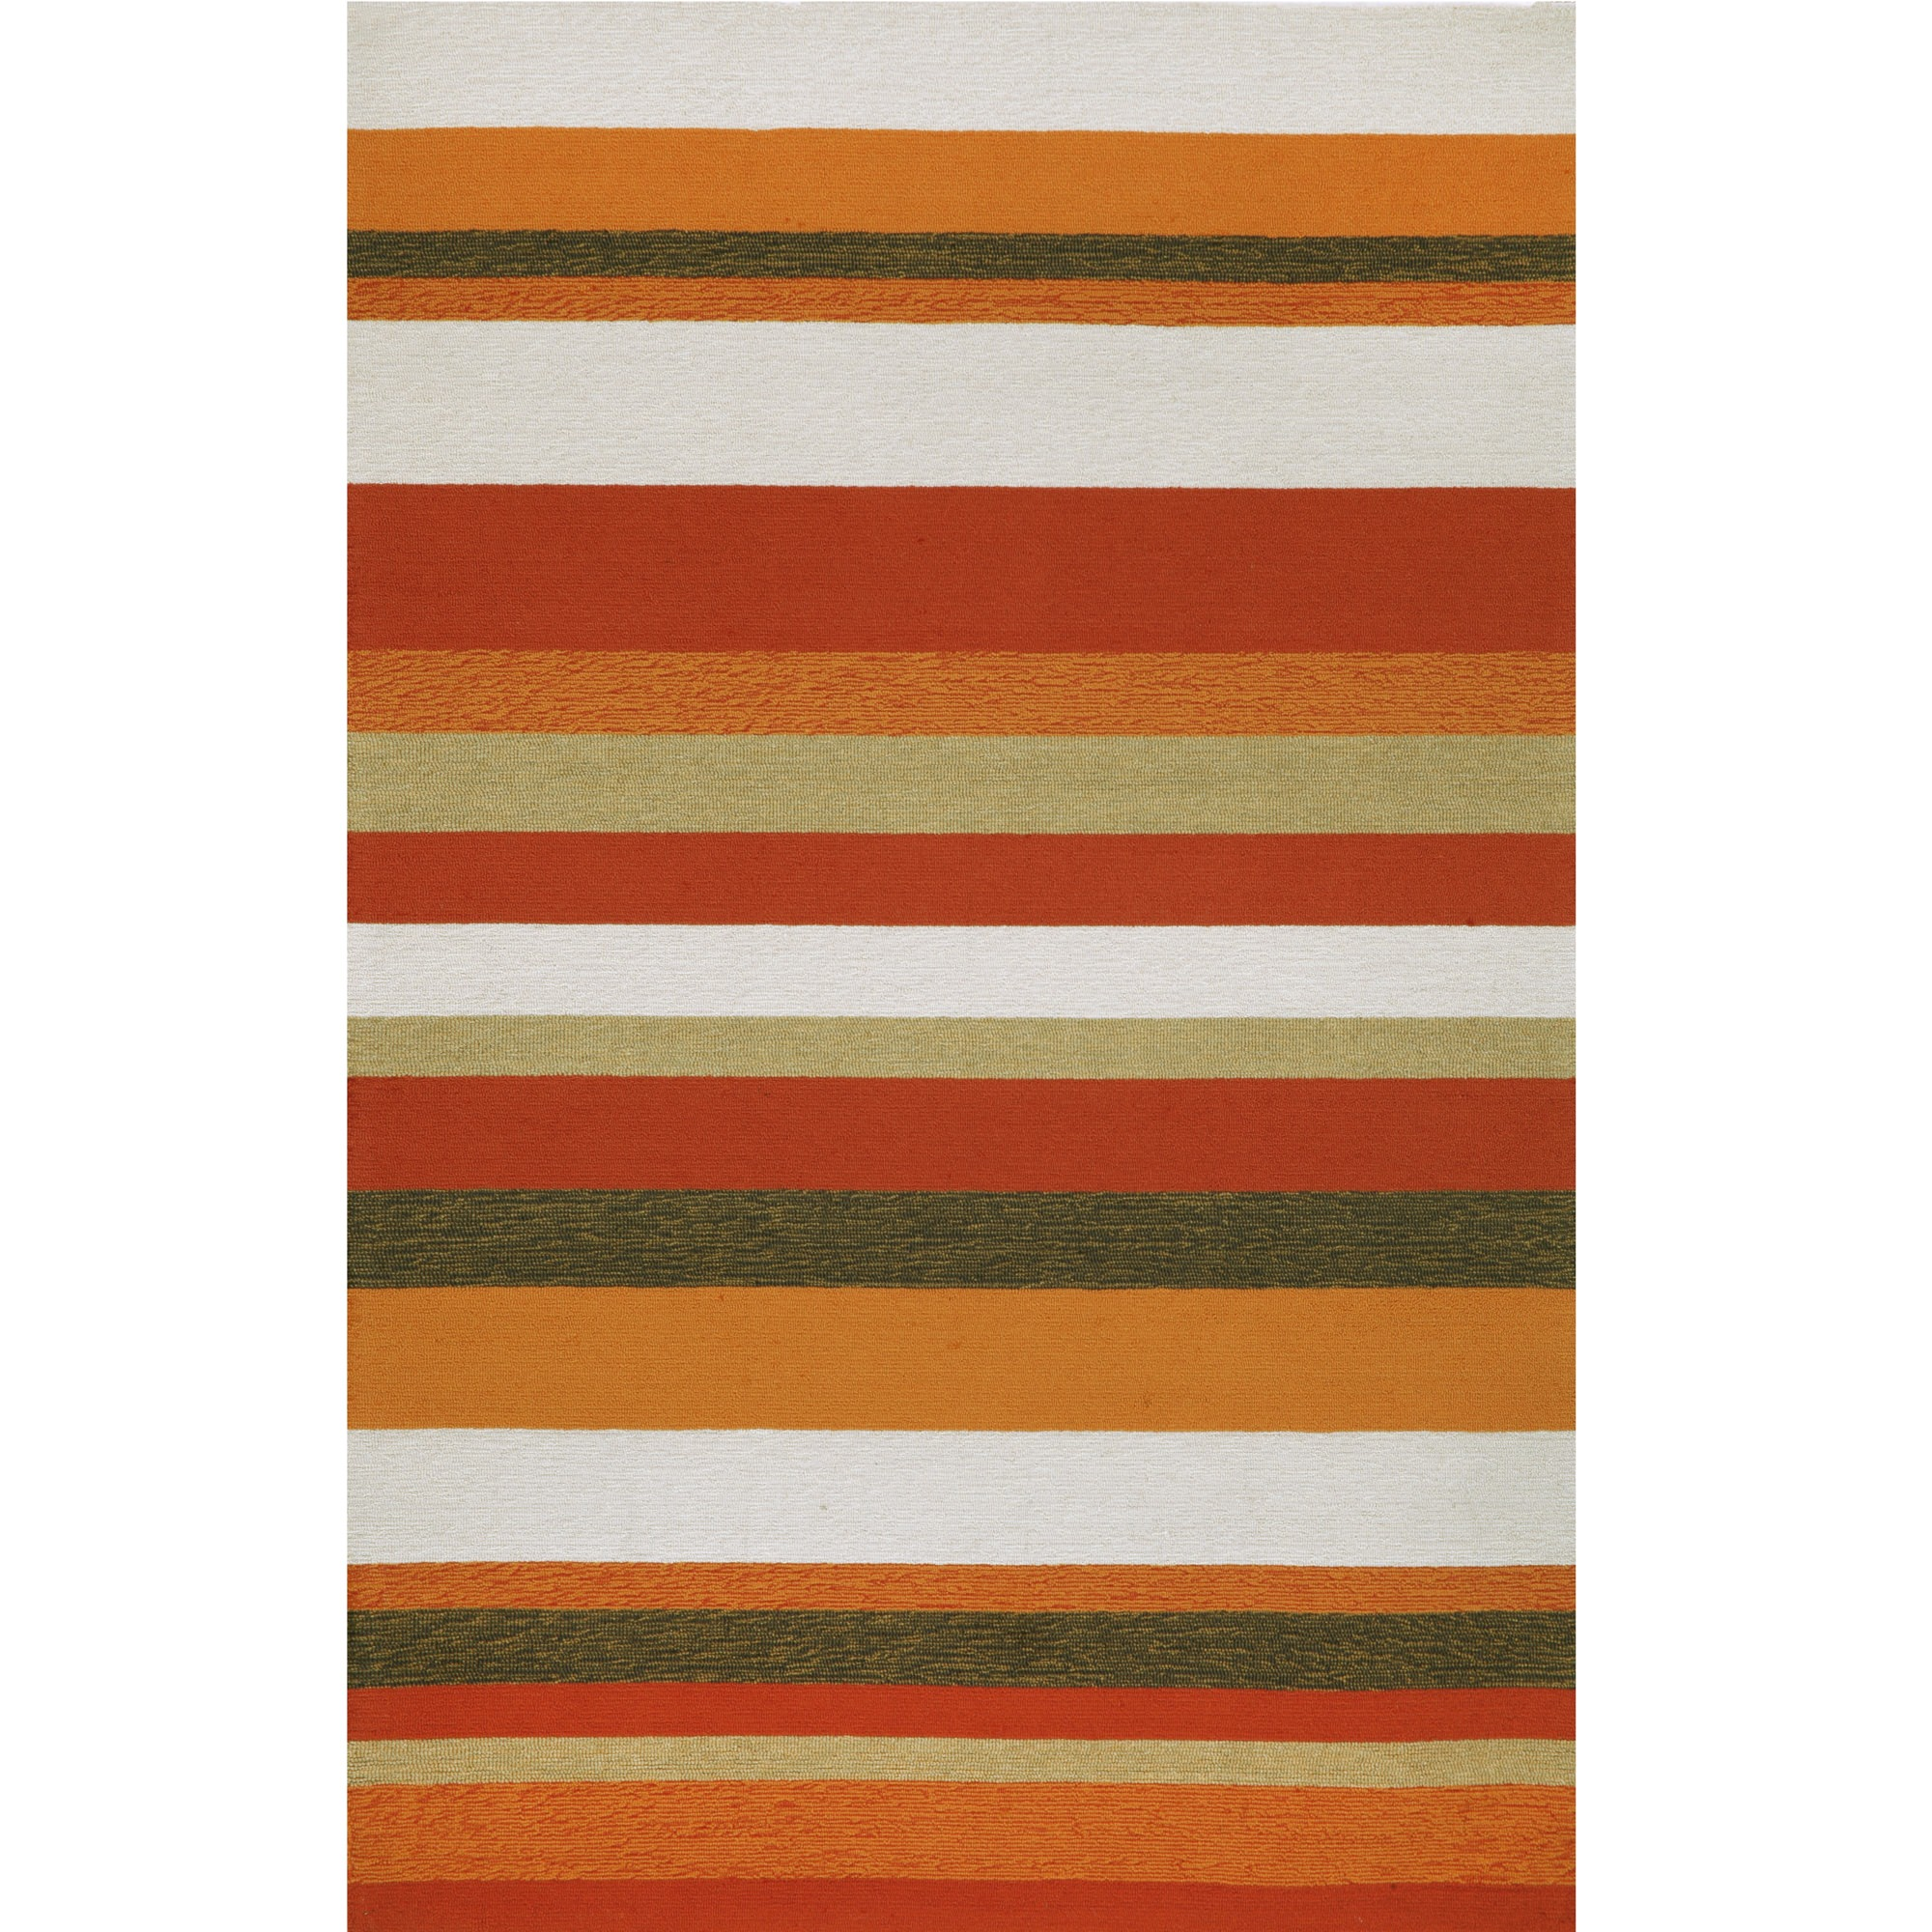 Shop Ravella Stripe Orange Outdoor Door Mat 24 Liora Manne By